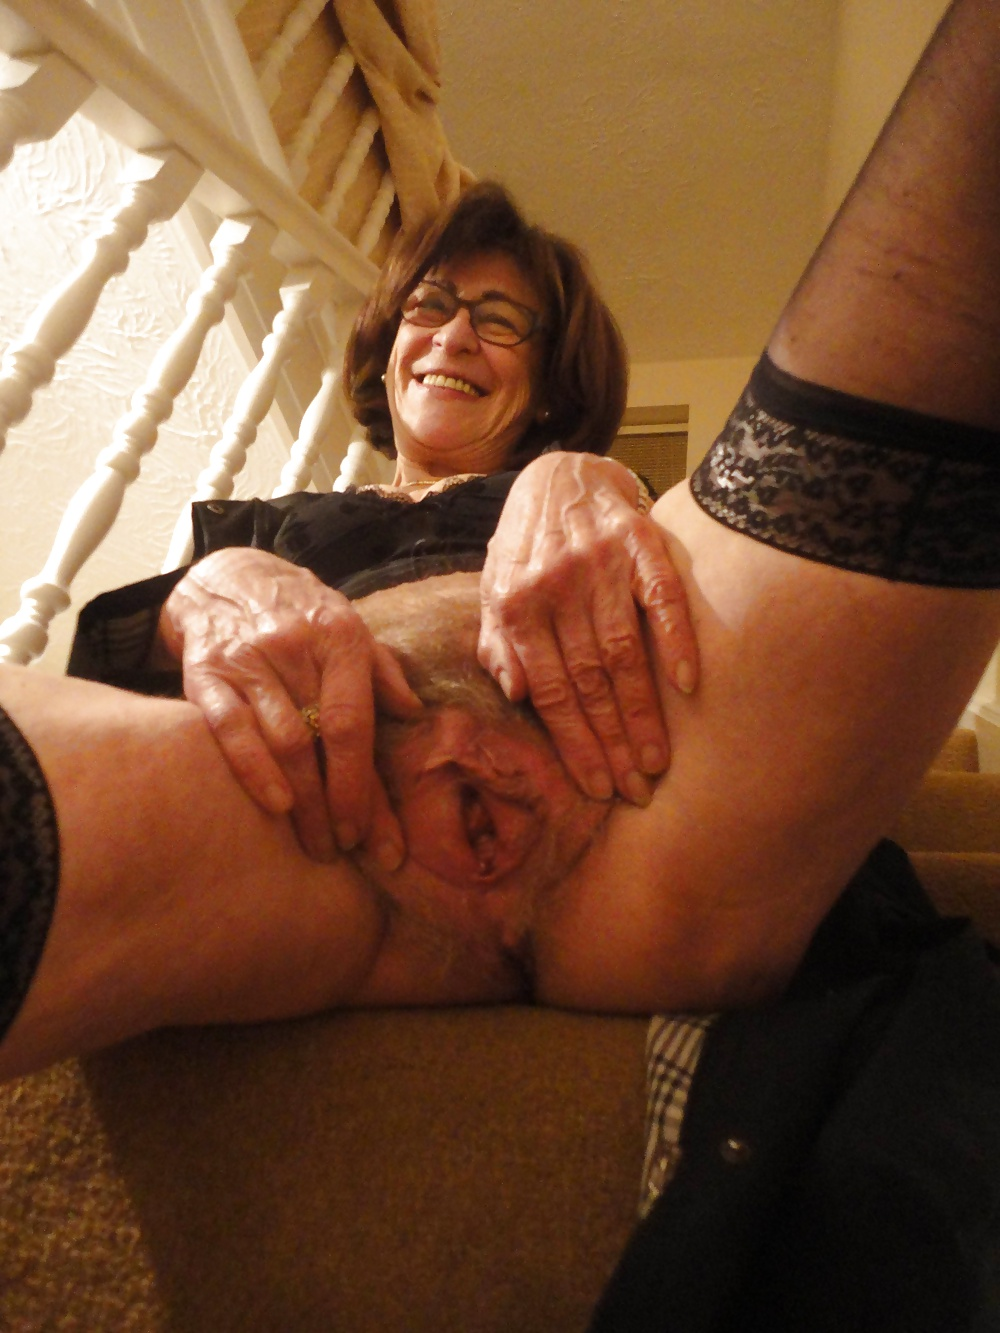 Usa amateur granny shows her big boobs and hairy pussy